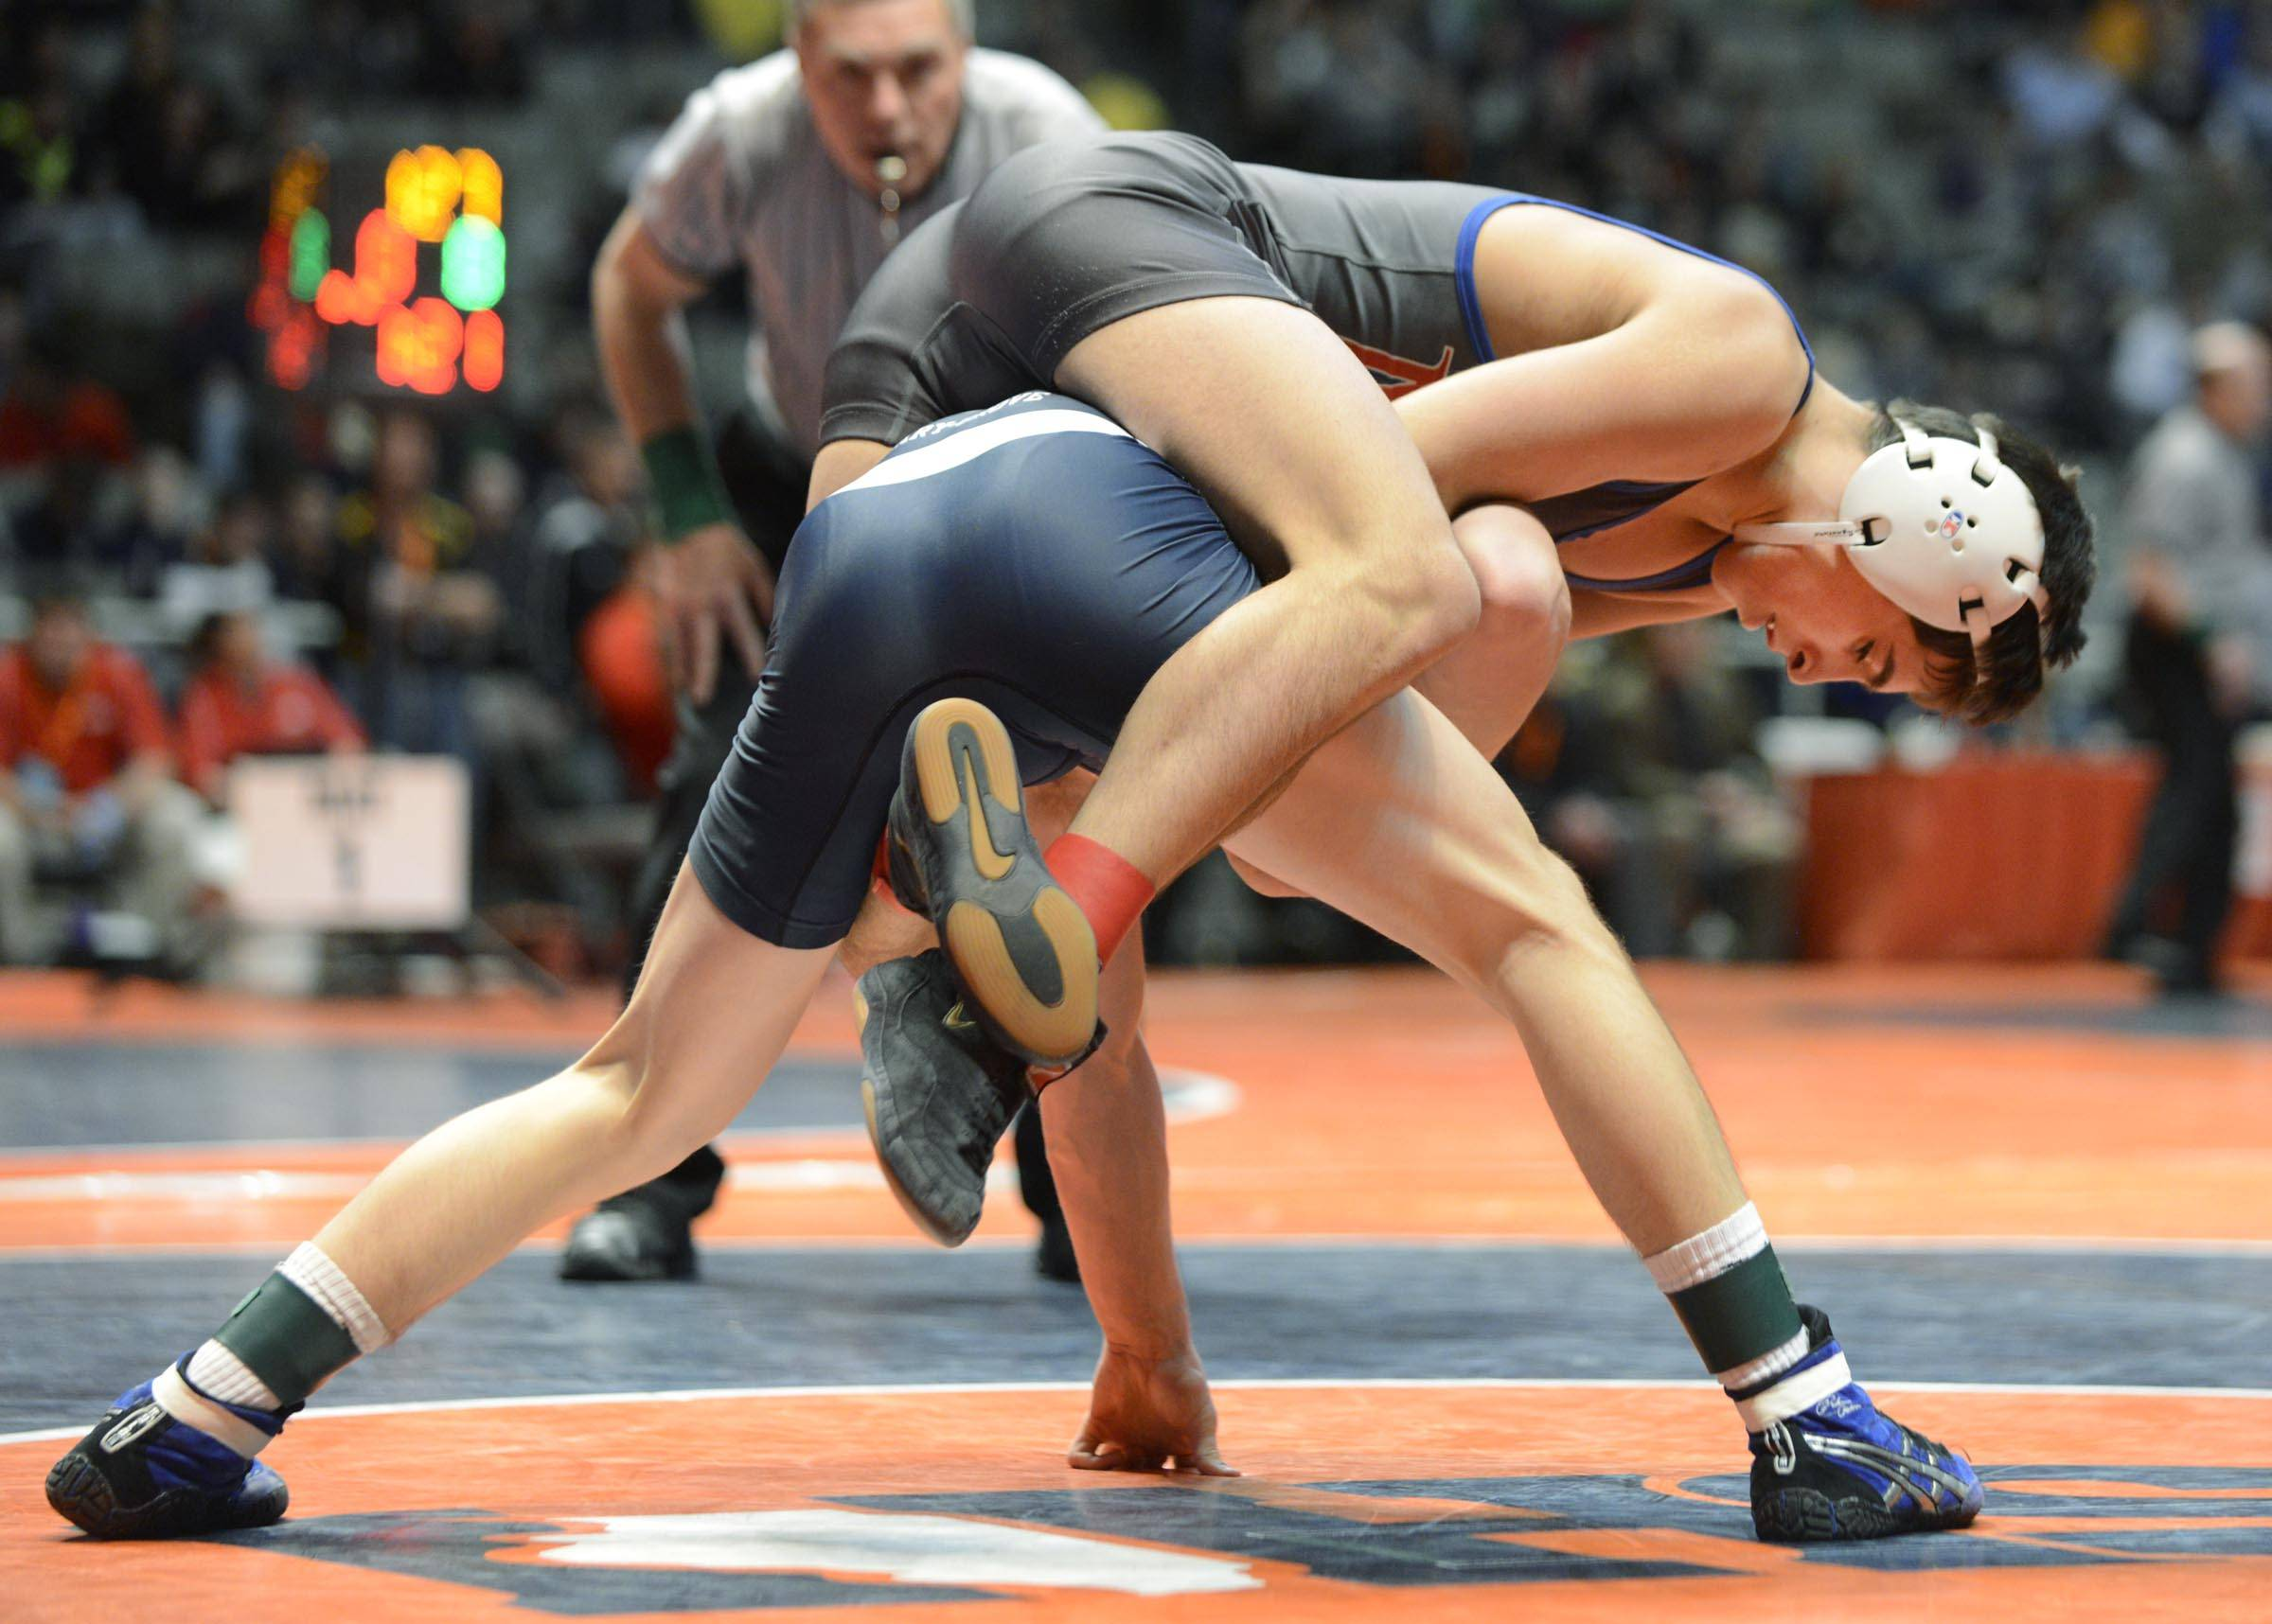 Marmion Acadey's AJ Jaffe rides Cary-Grove's Michael Cullen Friday in quarterfinals of the 120-pound weight class of the 3A IHSA state tournament. Cullen won.